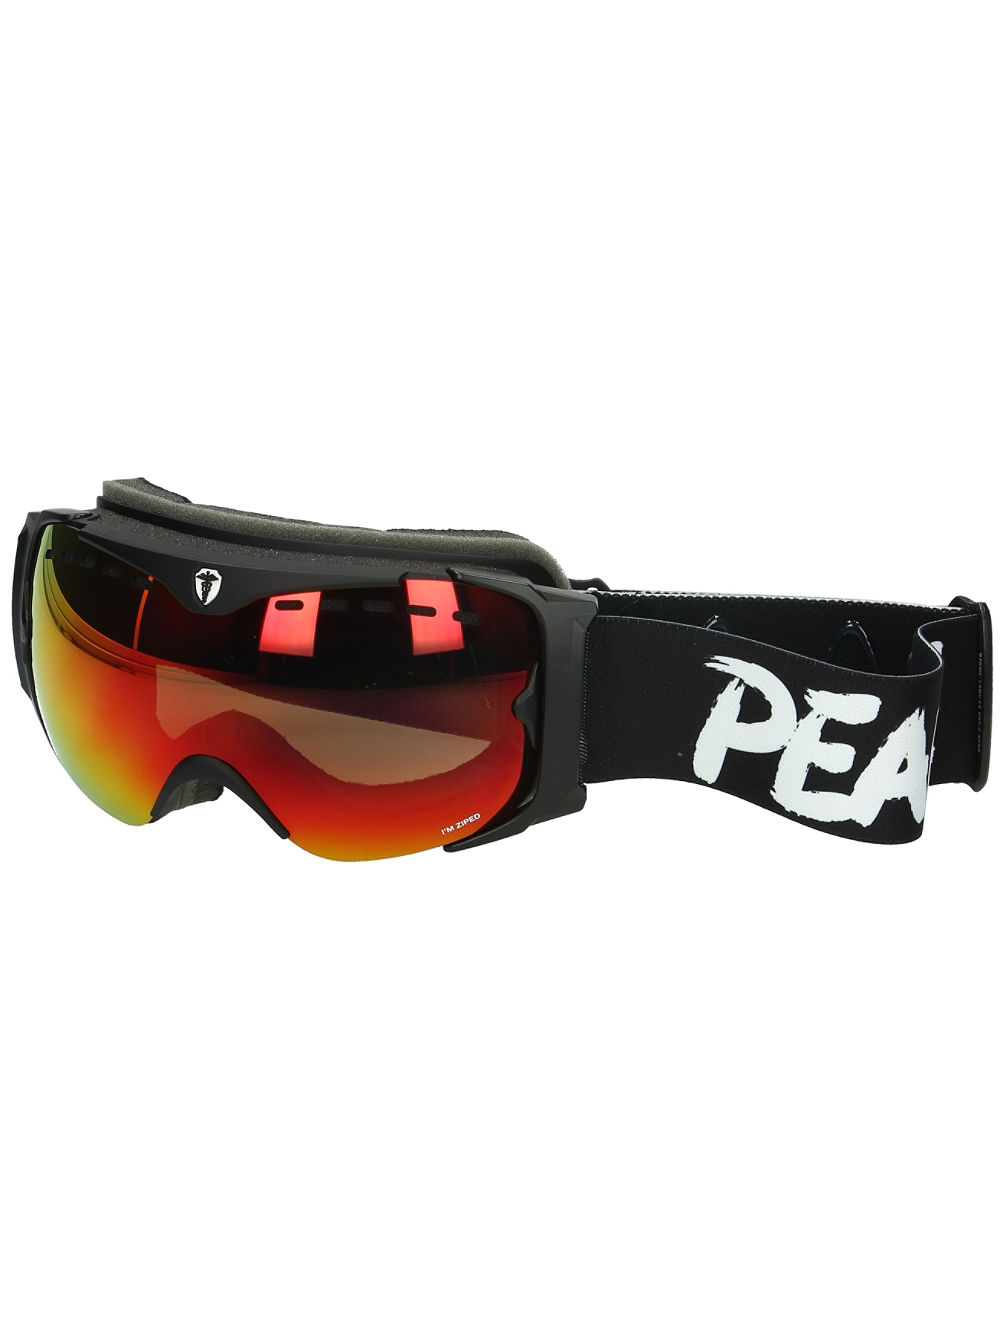 Guard Level 6 Black/White Non Violence Goggle